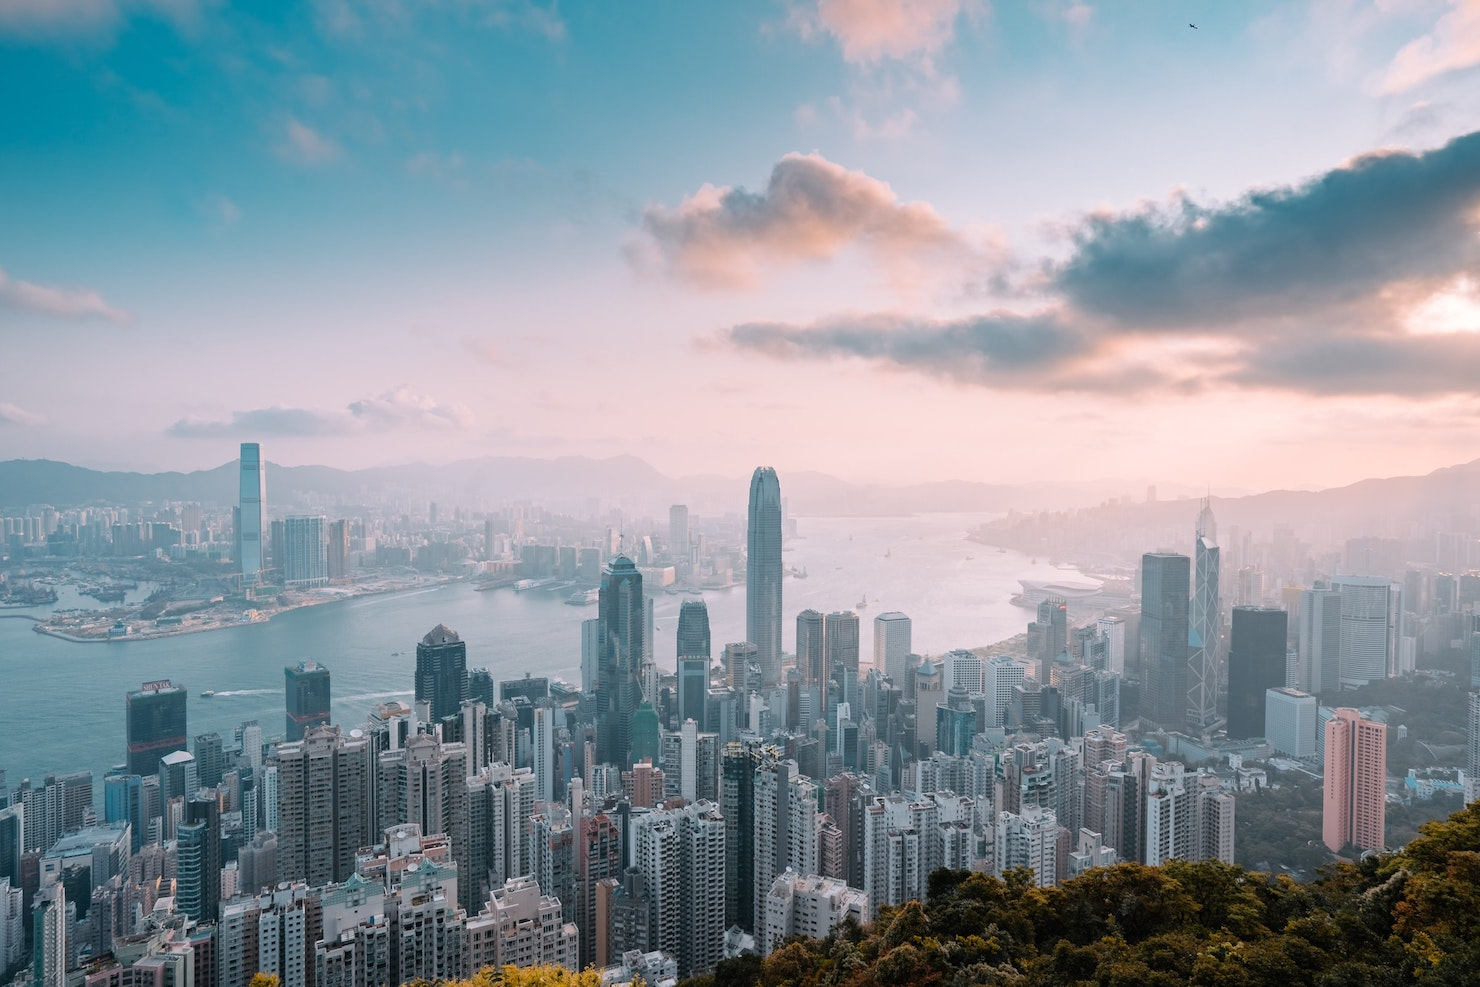 https://uluxeimages.uniqluxe.com/2020/10/hong-kong-skyscraper-victoria-peak-luxury-travel-uniq-luxe.jpg